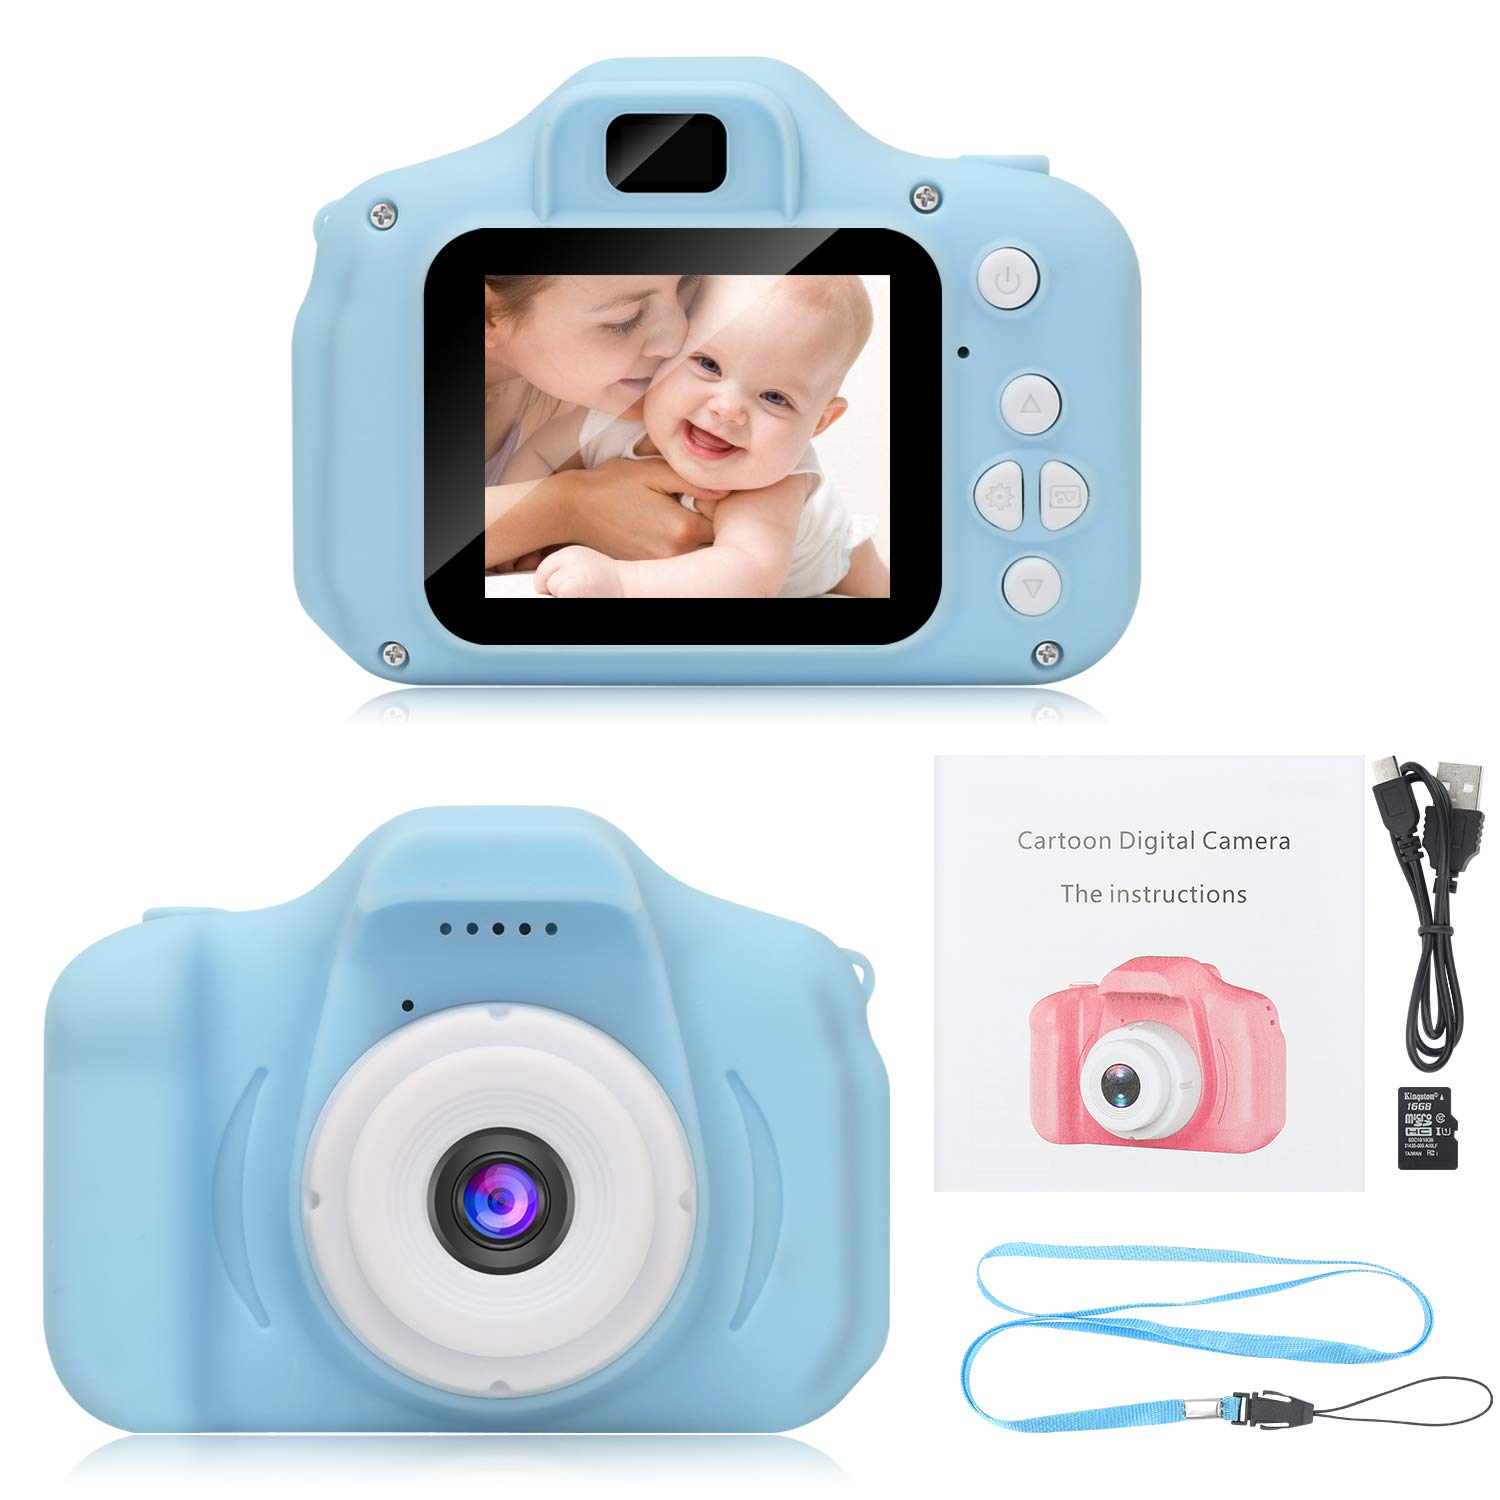 DDGG Kids Digital Camera Toy Camera HD Kids Video Cameras Shockproof Cameras with Soft Silicone Shell Gift for 4-10 Years Old Girls Boys Party Outdoor Play (16G SD Card Included) by DDGG (Image #1)